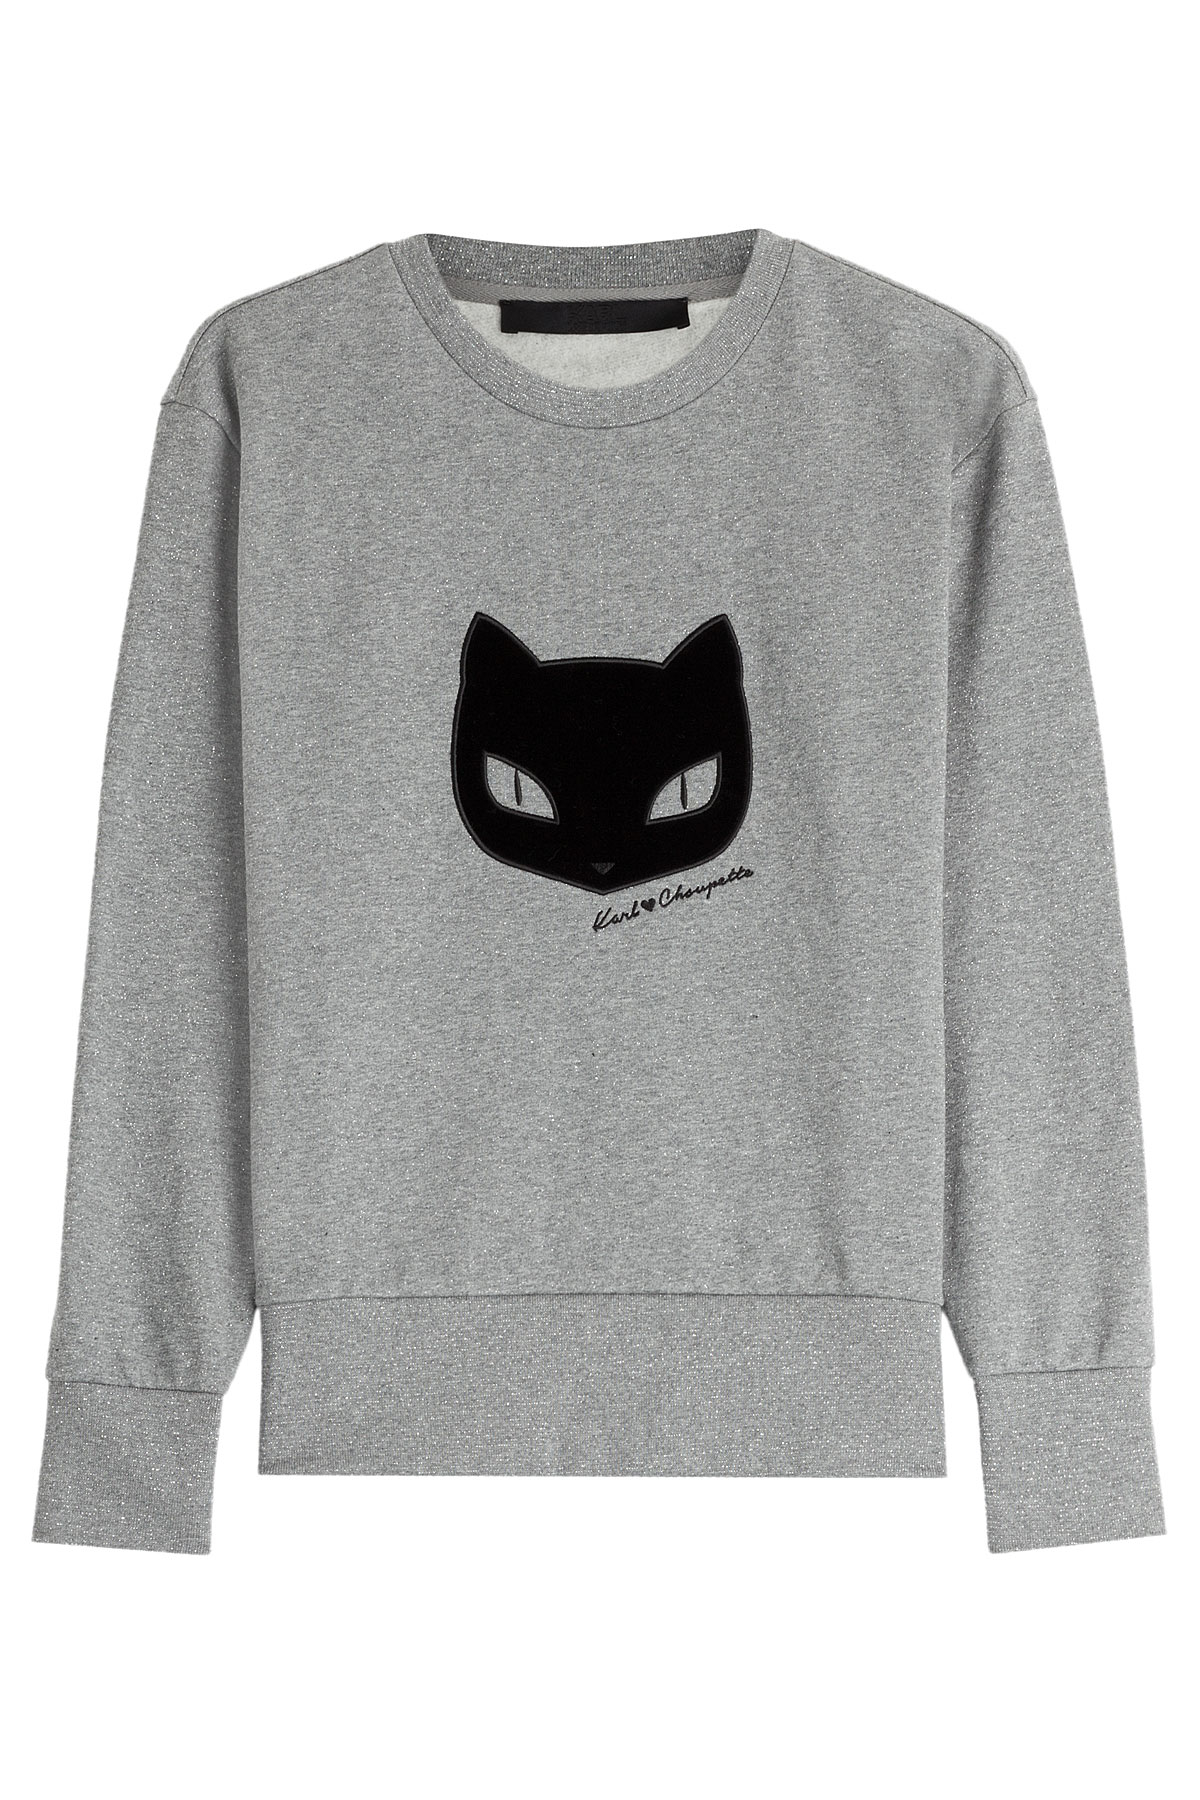 Lagerfeld Cotton Sweatshirt In With Applique Karl Gray Grey Lyst RqZ5H